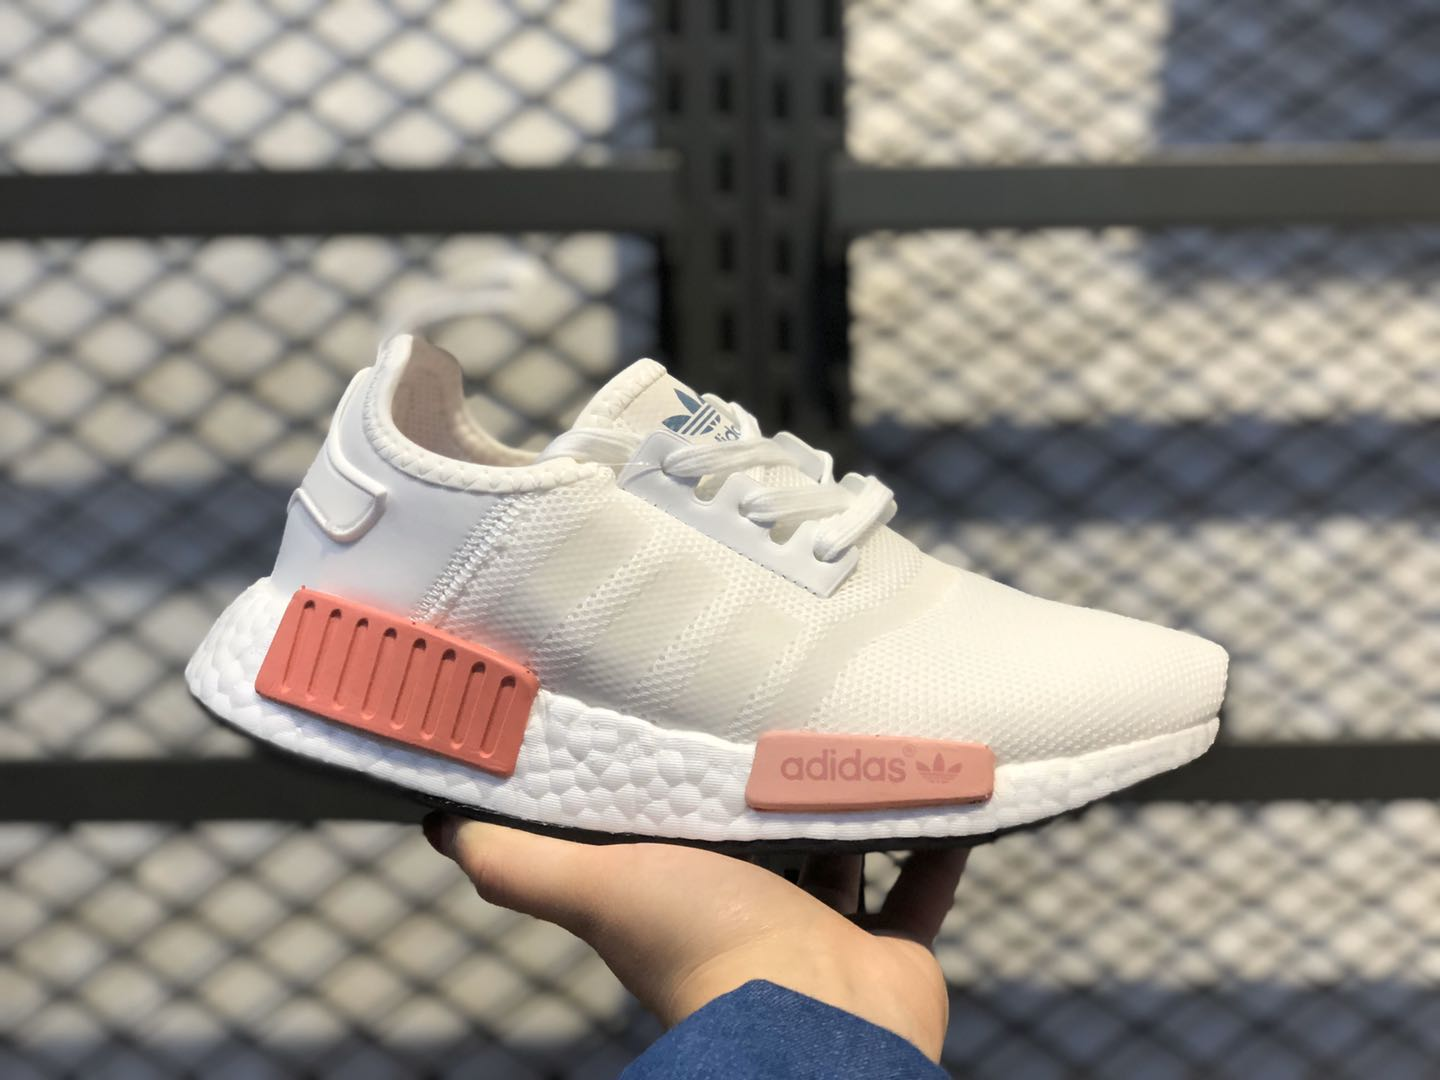 Adidas NMD R1 Ftwr White/Ftwr White-Rose Women's Running Shoes BY9952